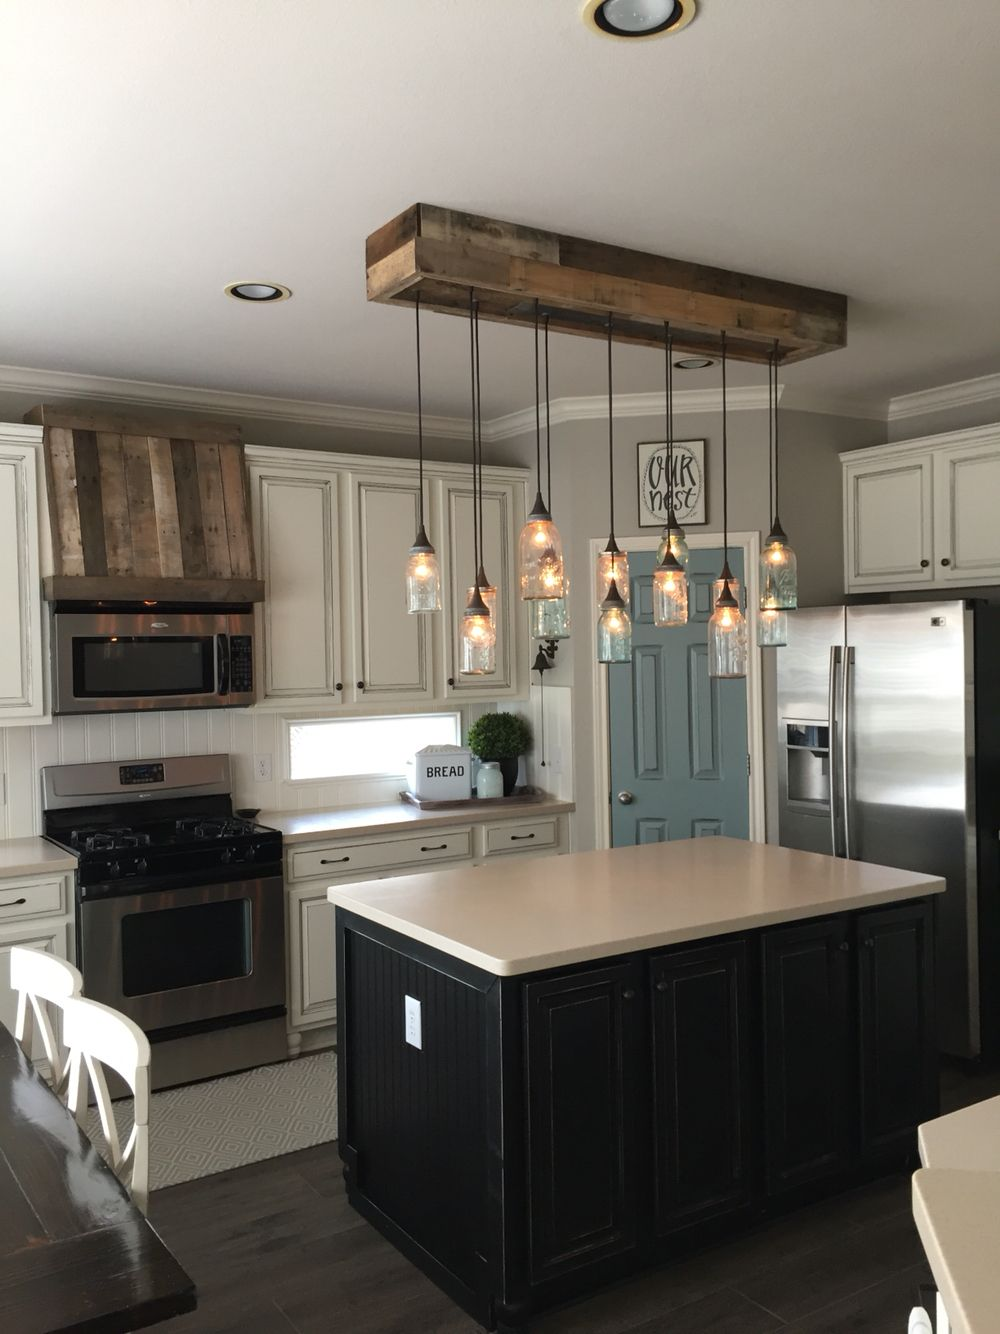 hi all updated pics ourfauxfarmhouse on ig come follow thanks rh pinterest com hanging kitchen light triple hanging kitchen lights at polehill